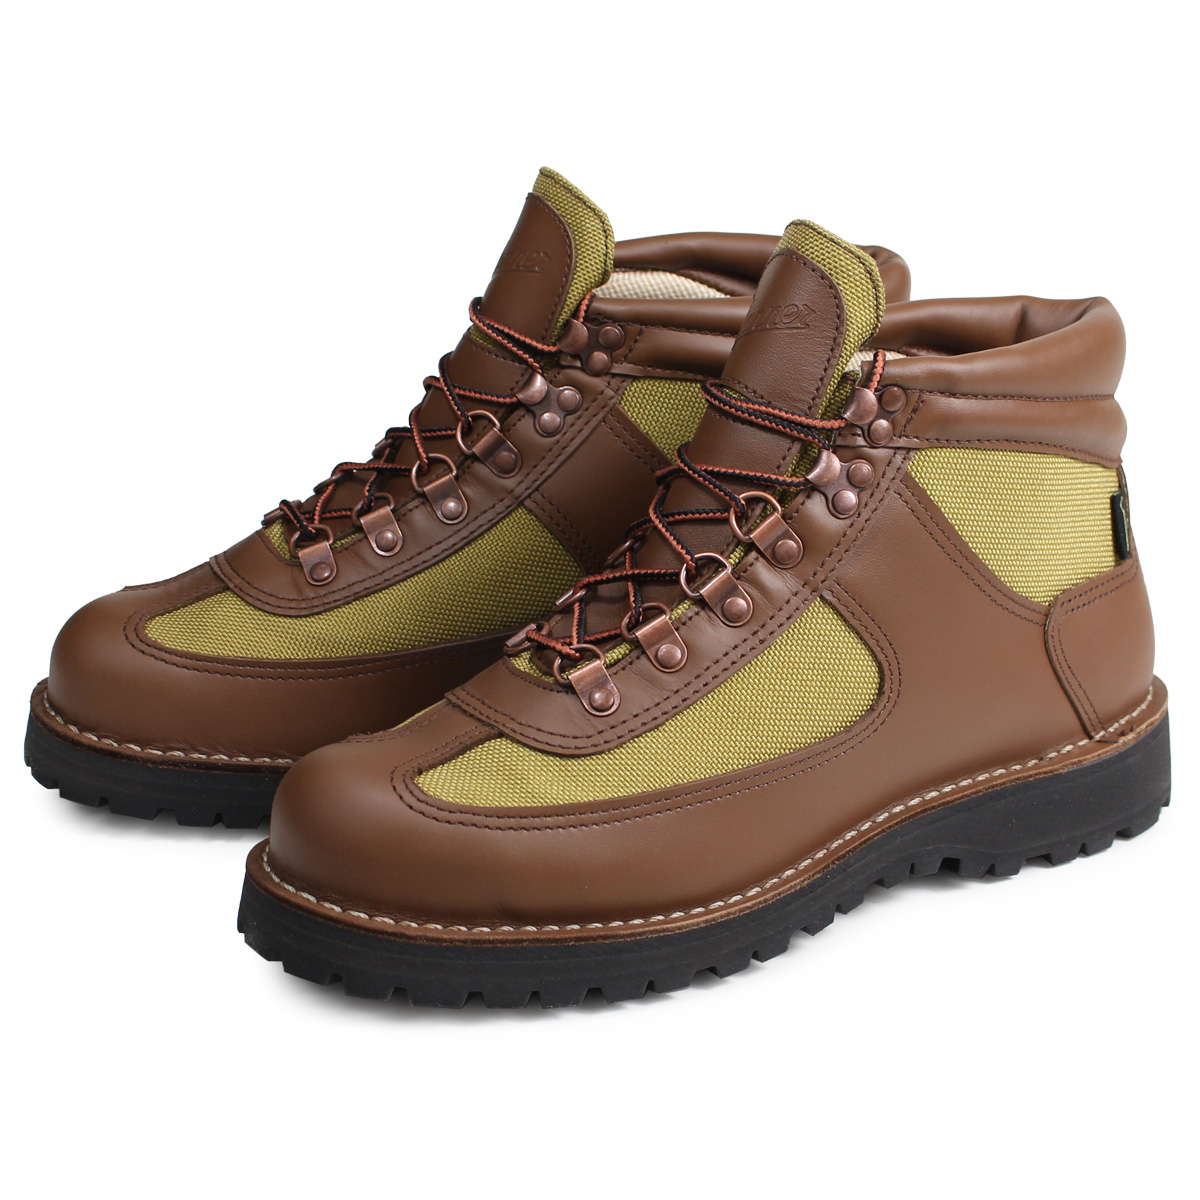 Danner FEATHER LIGHT REVIVAL ダナー フェザーライト ブーツ メンズ MADE IN USA EEワイズ ブラウン 30125